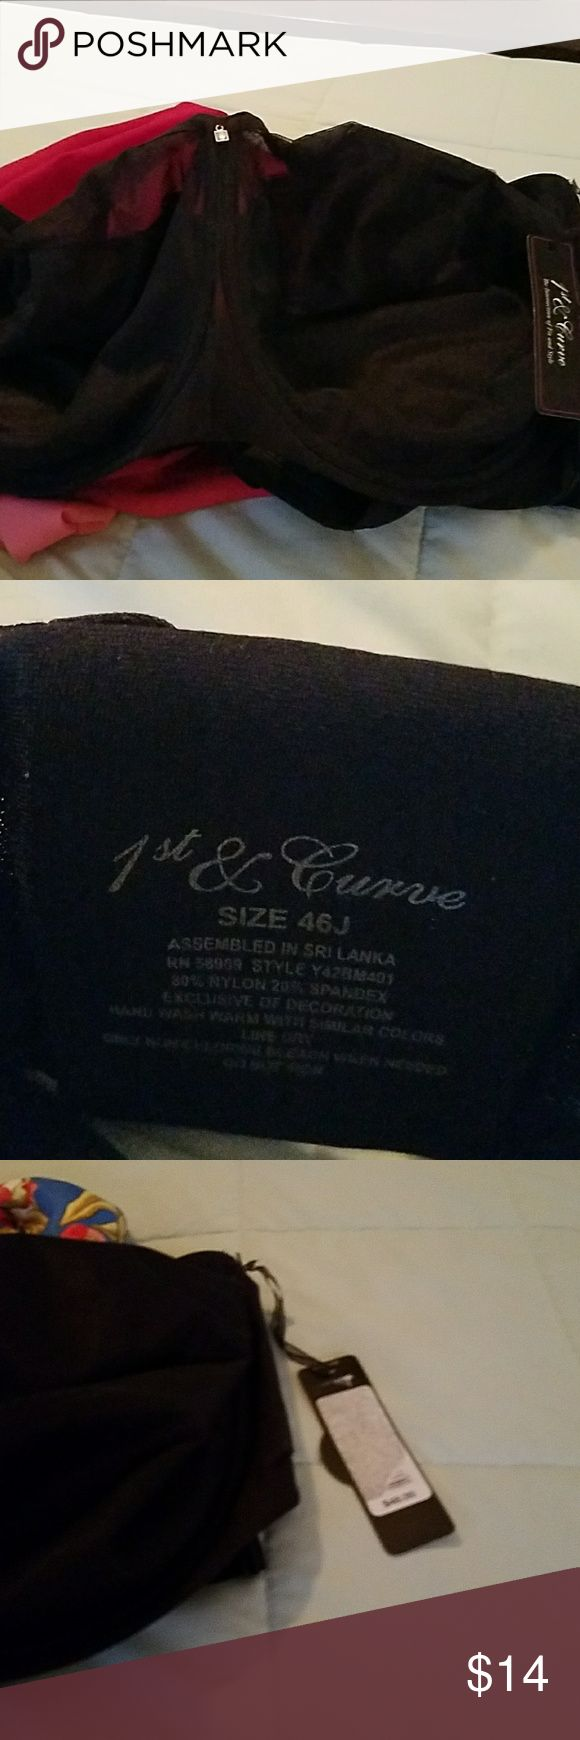 1st & Curve Bra with Tag Brand New 1st & Curve Bra with Tag Bought at Dillards 1st And Curvy Intimates & Sleepwear Bras